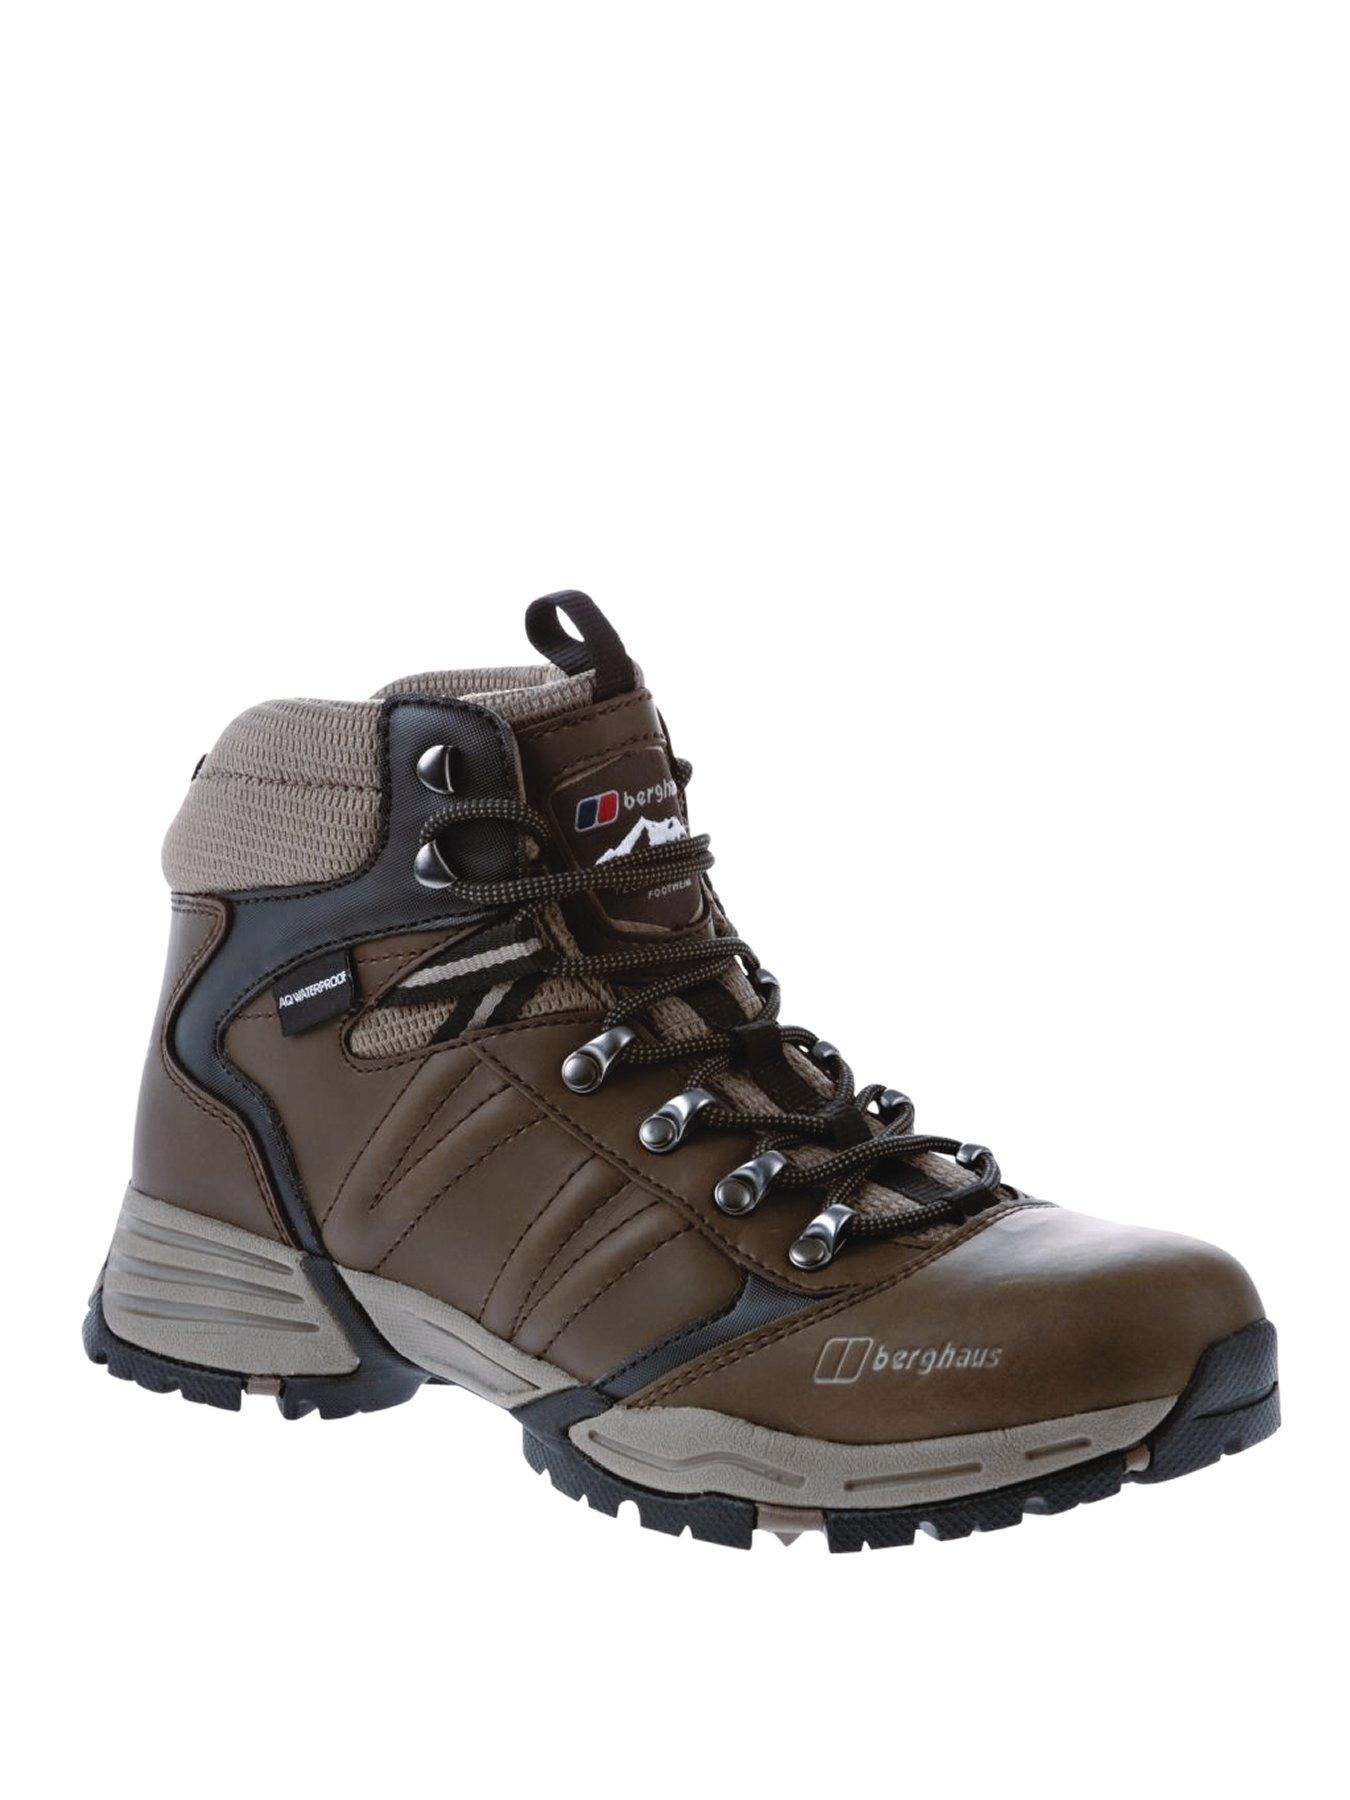 Expeditor AQ Leathr Men's Hiking Boots, Brown.